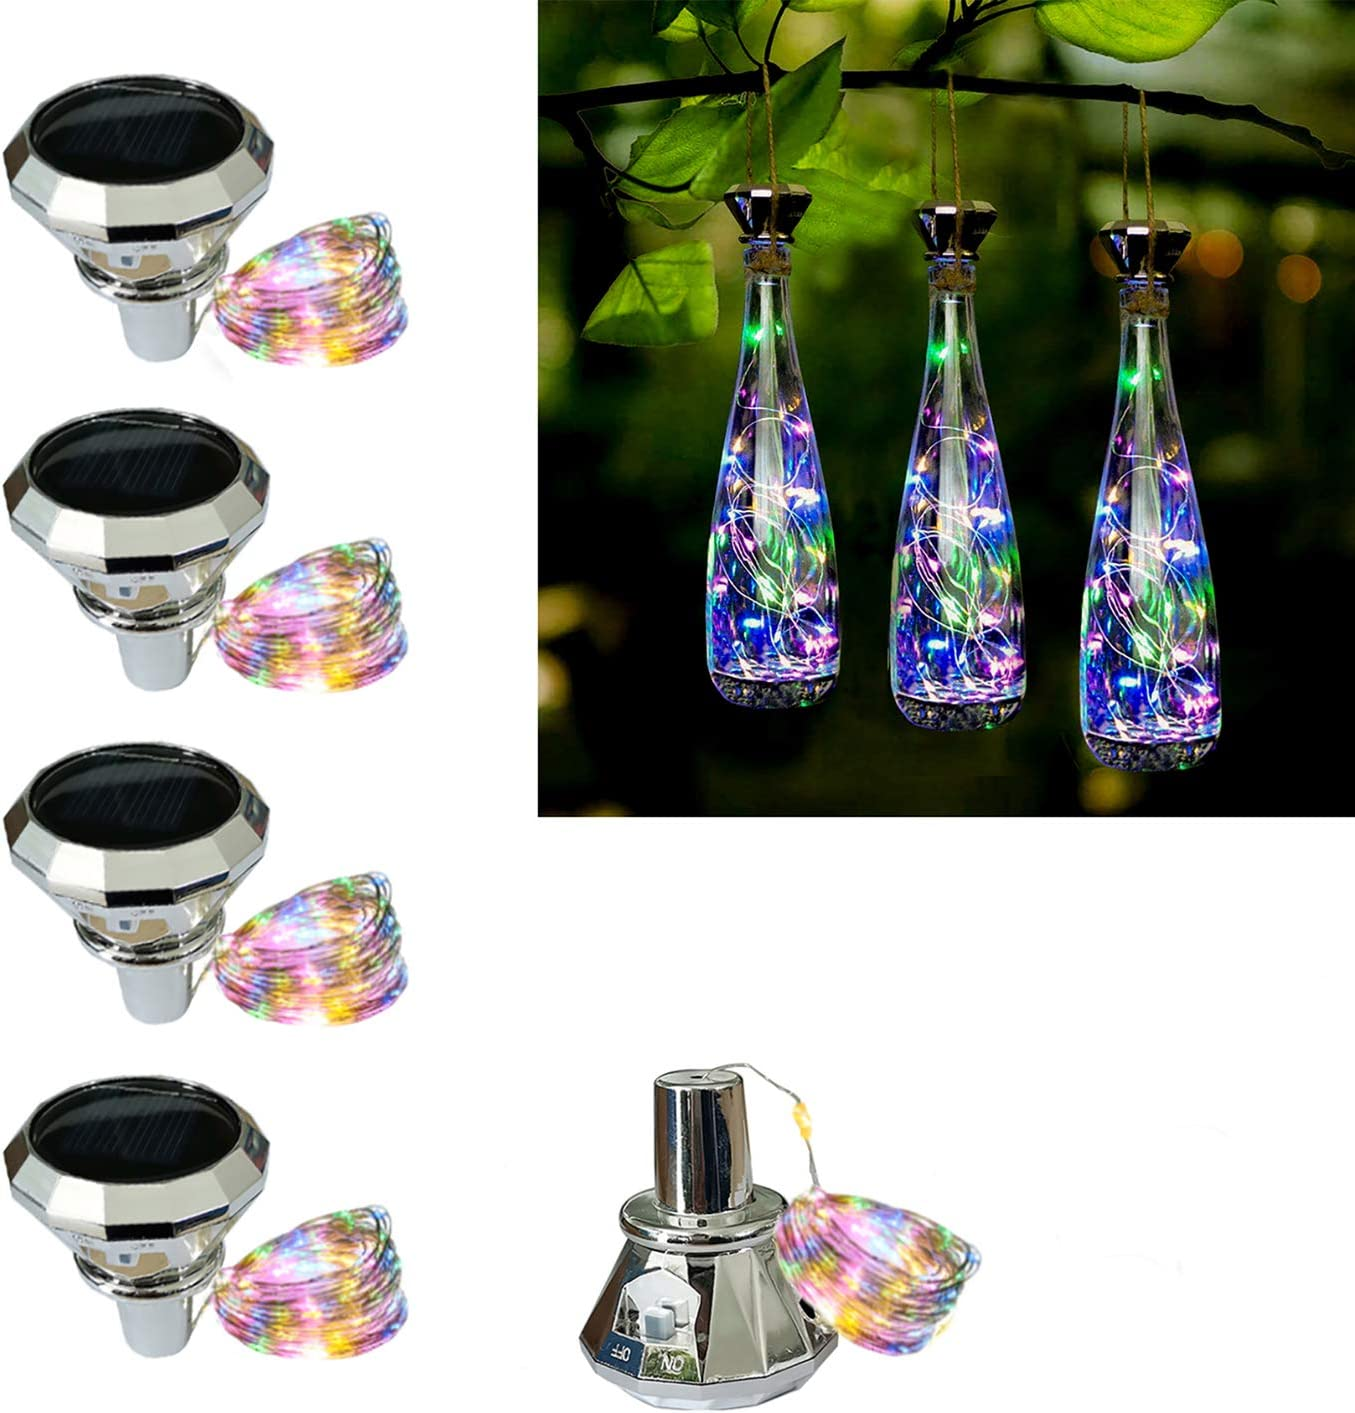 Solar Bottle Lights, Wine Bottle Light with Cork, 5 Pack 20LED Outdoor Waterproof Fairy Light Strings for Recycling Wine Bottle,Gardens,Patio Decoration (5pack Multicolor)